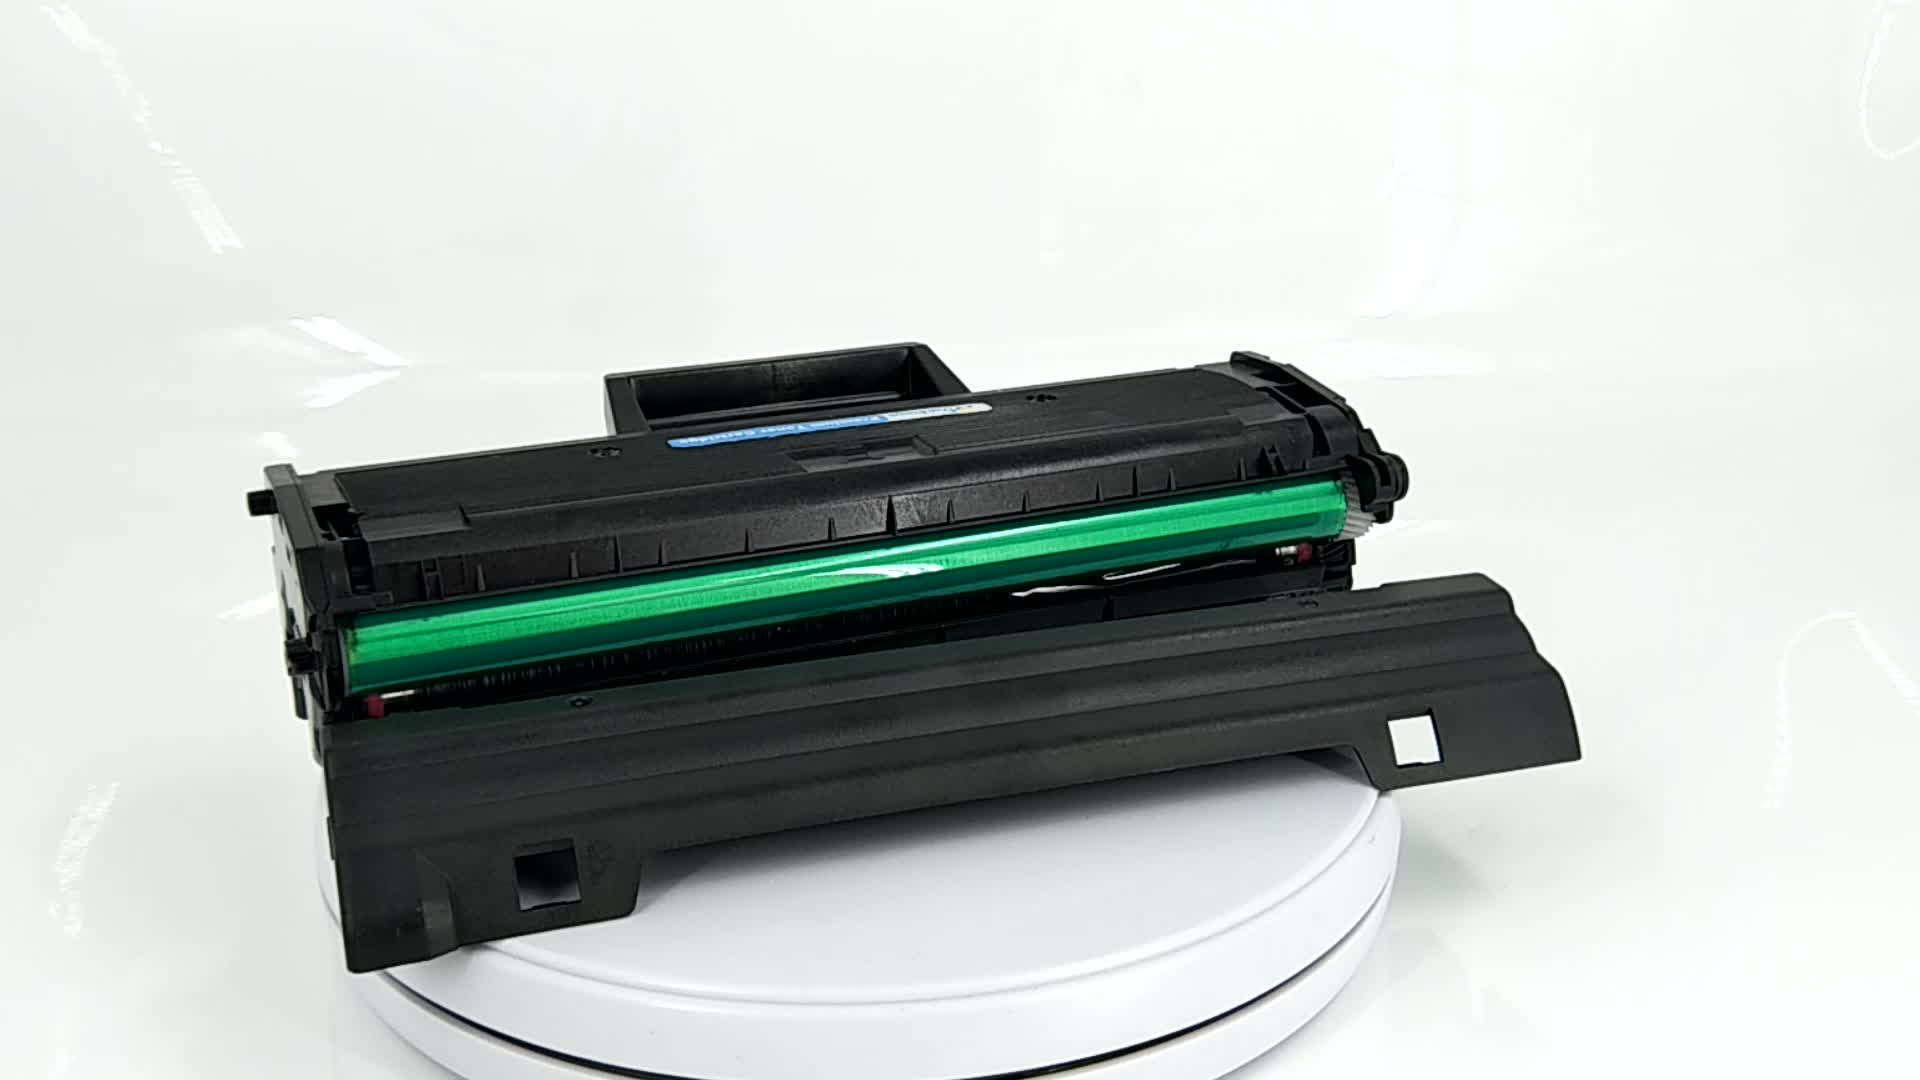 Compatible Samsung 1160 Cartridge Toner For mlt-d101s d101s scx-3400 scx 3400 sf-760p For samsung clx 2160 reset toner chips